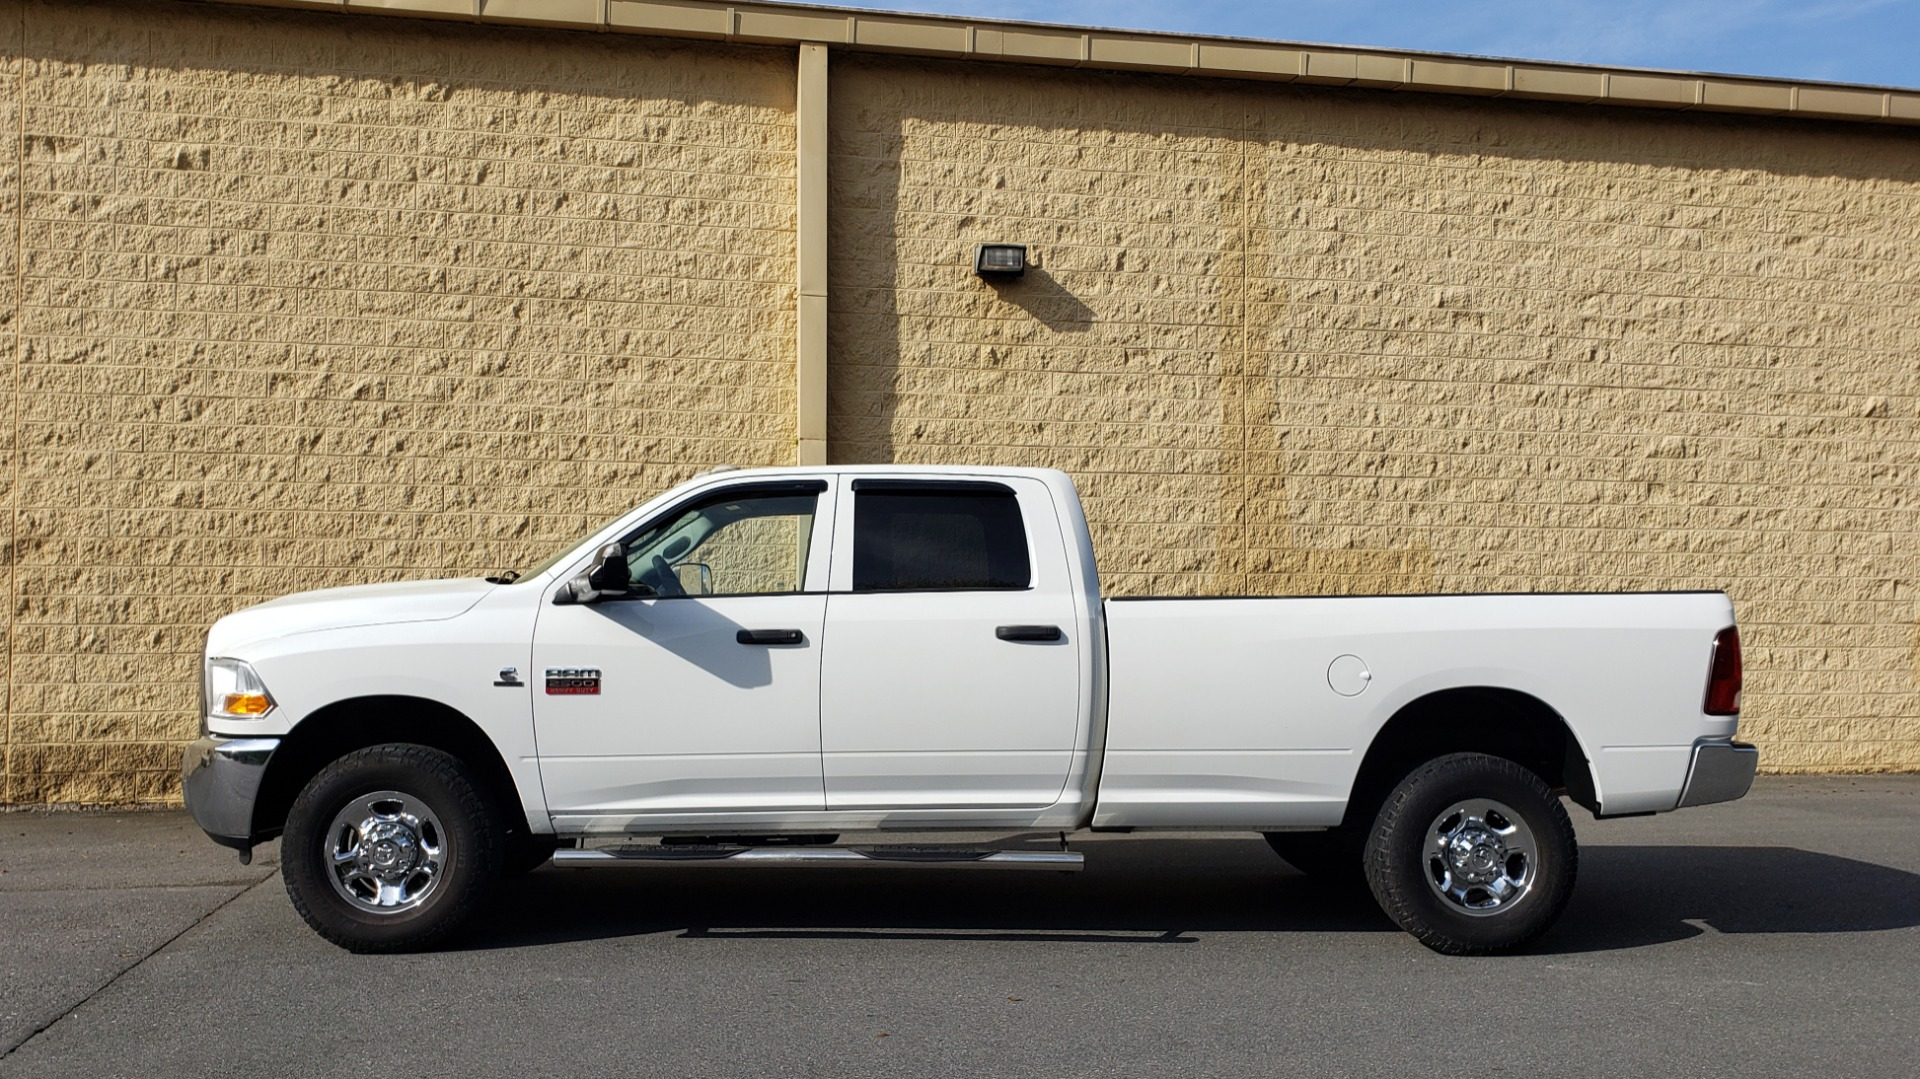 Used 2011 Ram 2500 4WD CREW CAB 169 ST / 6.7L CUMMINS / 6-SPD AUTO for sale Sold at Formula Imports in Charlotte NC 28227 2